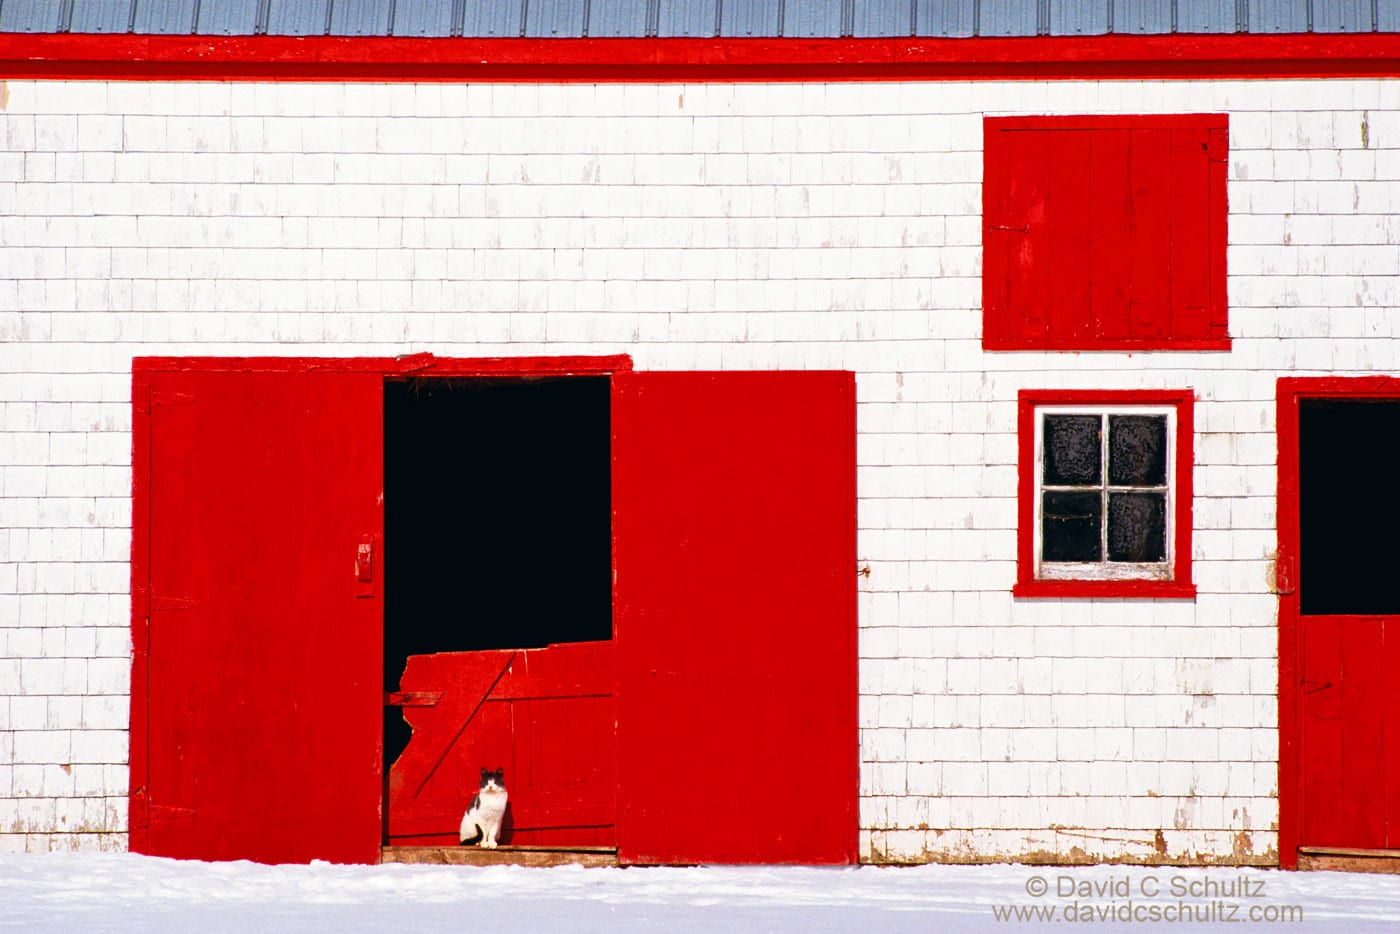 Cat on Prince Edward Island Canada - Image #13-313